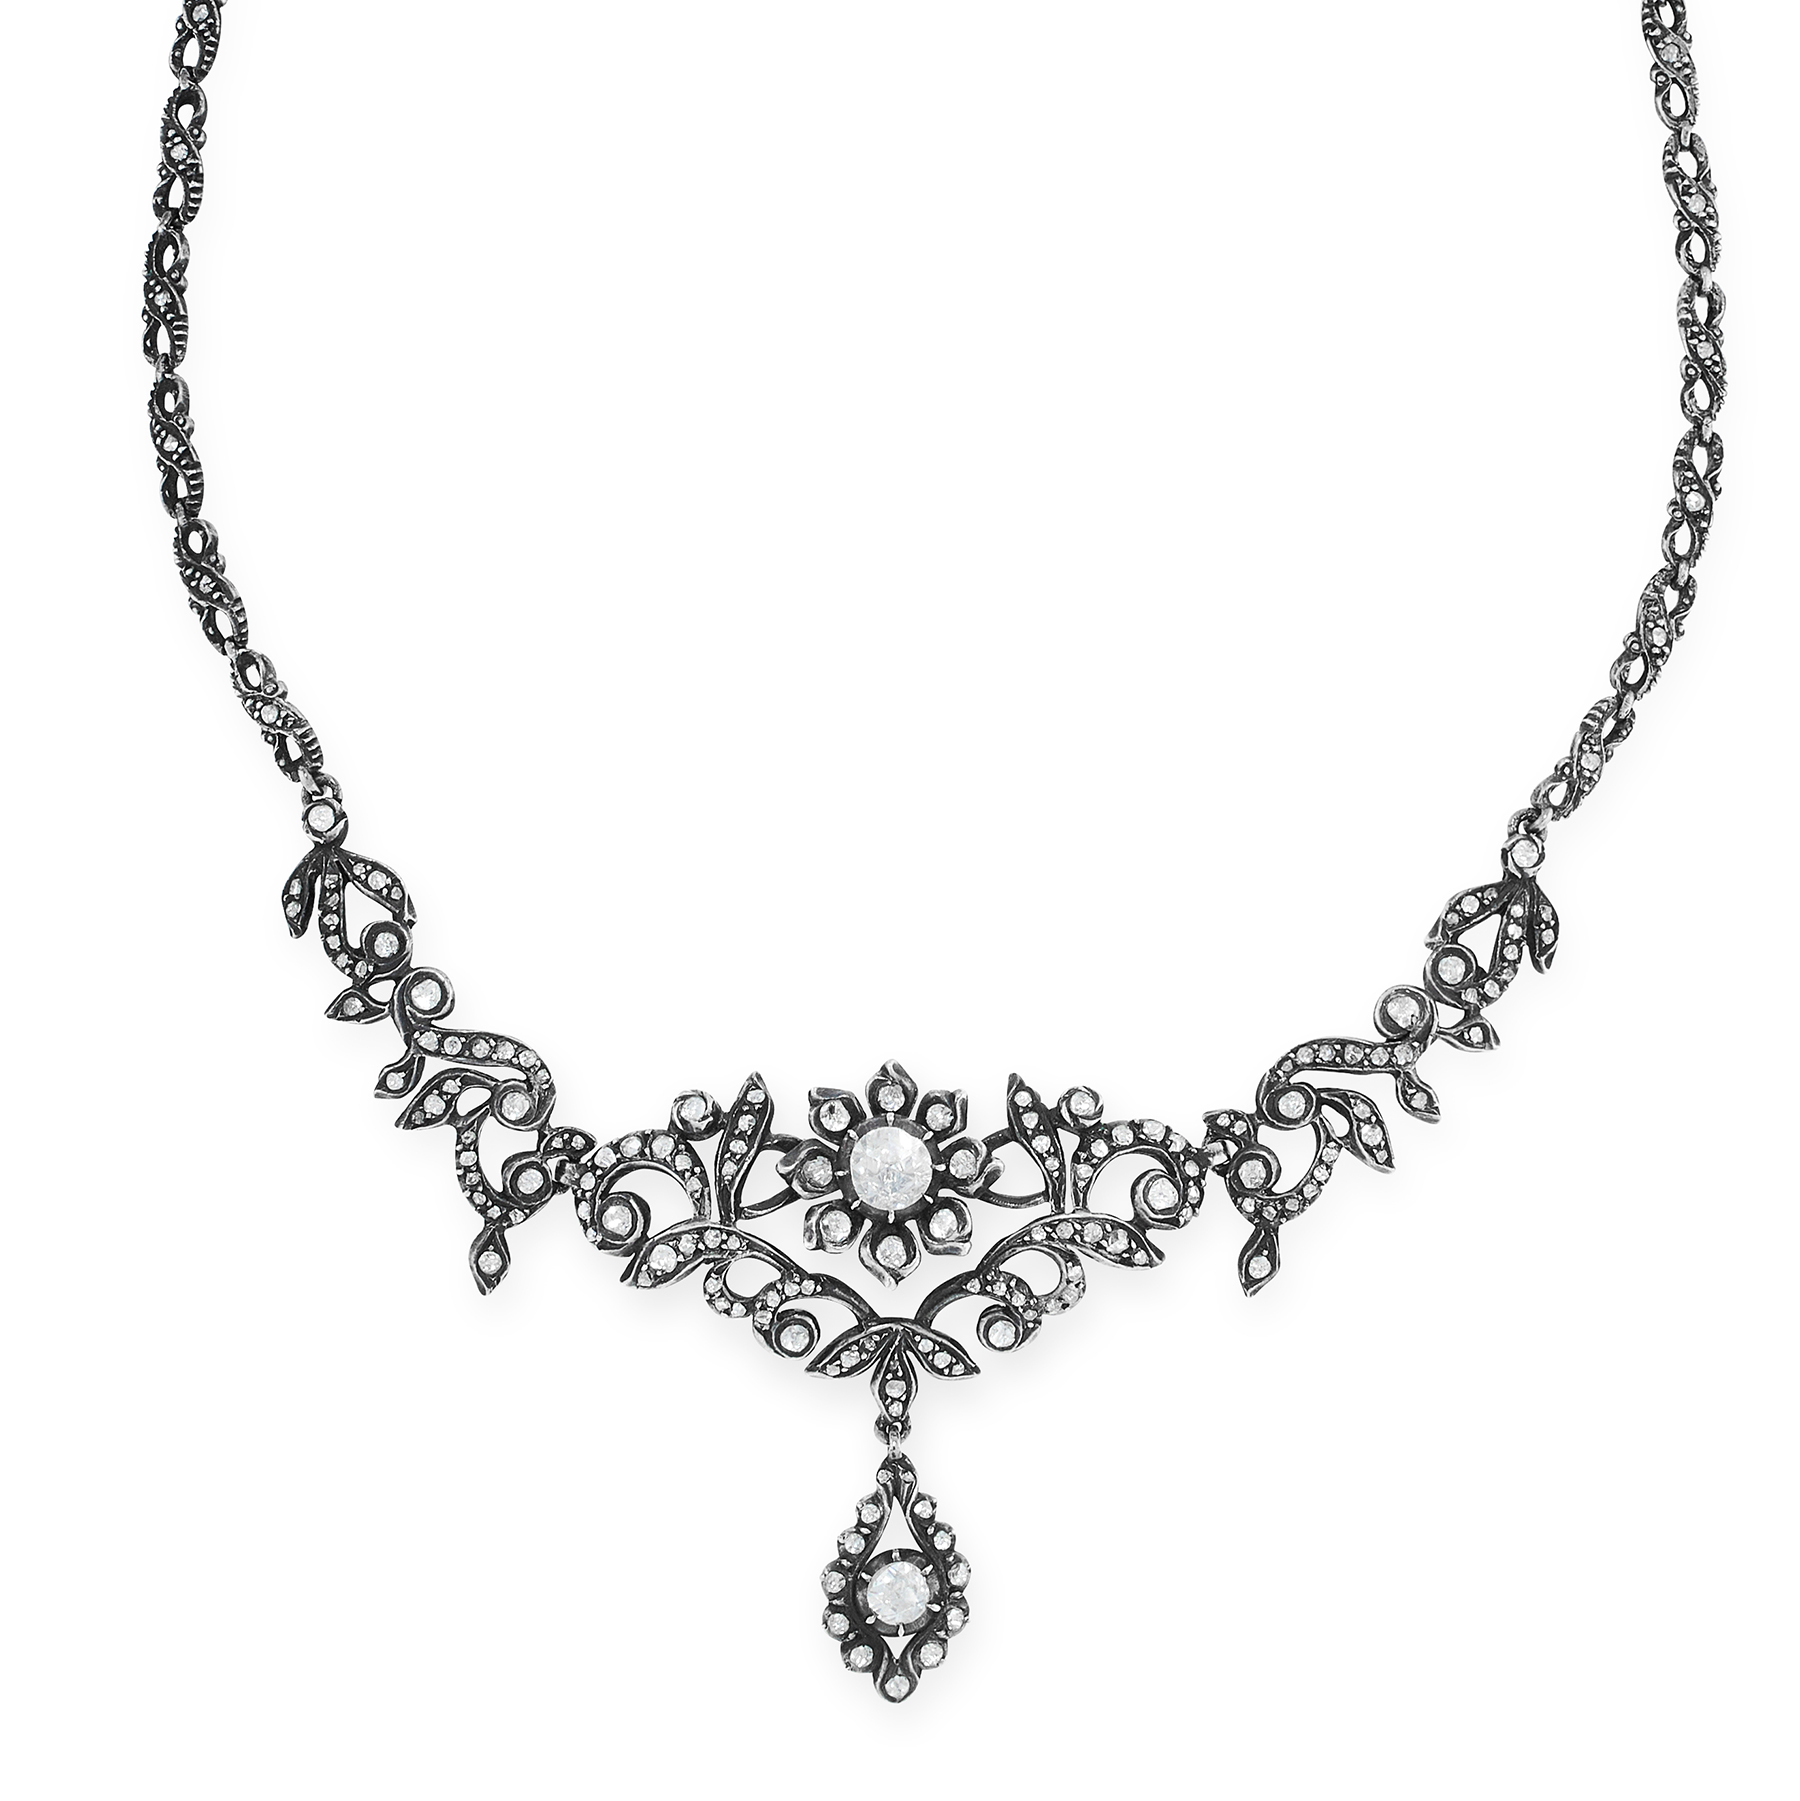 AN ANTIQUE DIAMOND NECKLACE, DUTCH 19TH CENTURY in yellow gold and silver, the scrolling foliate